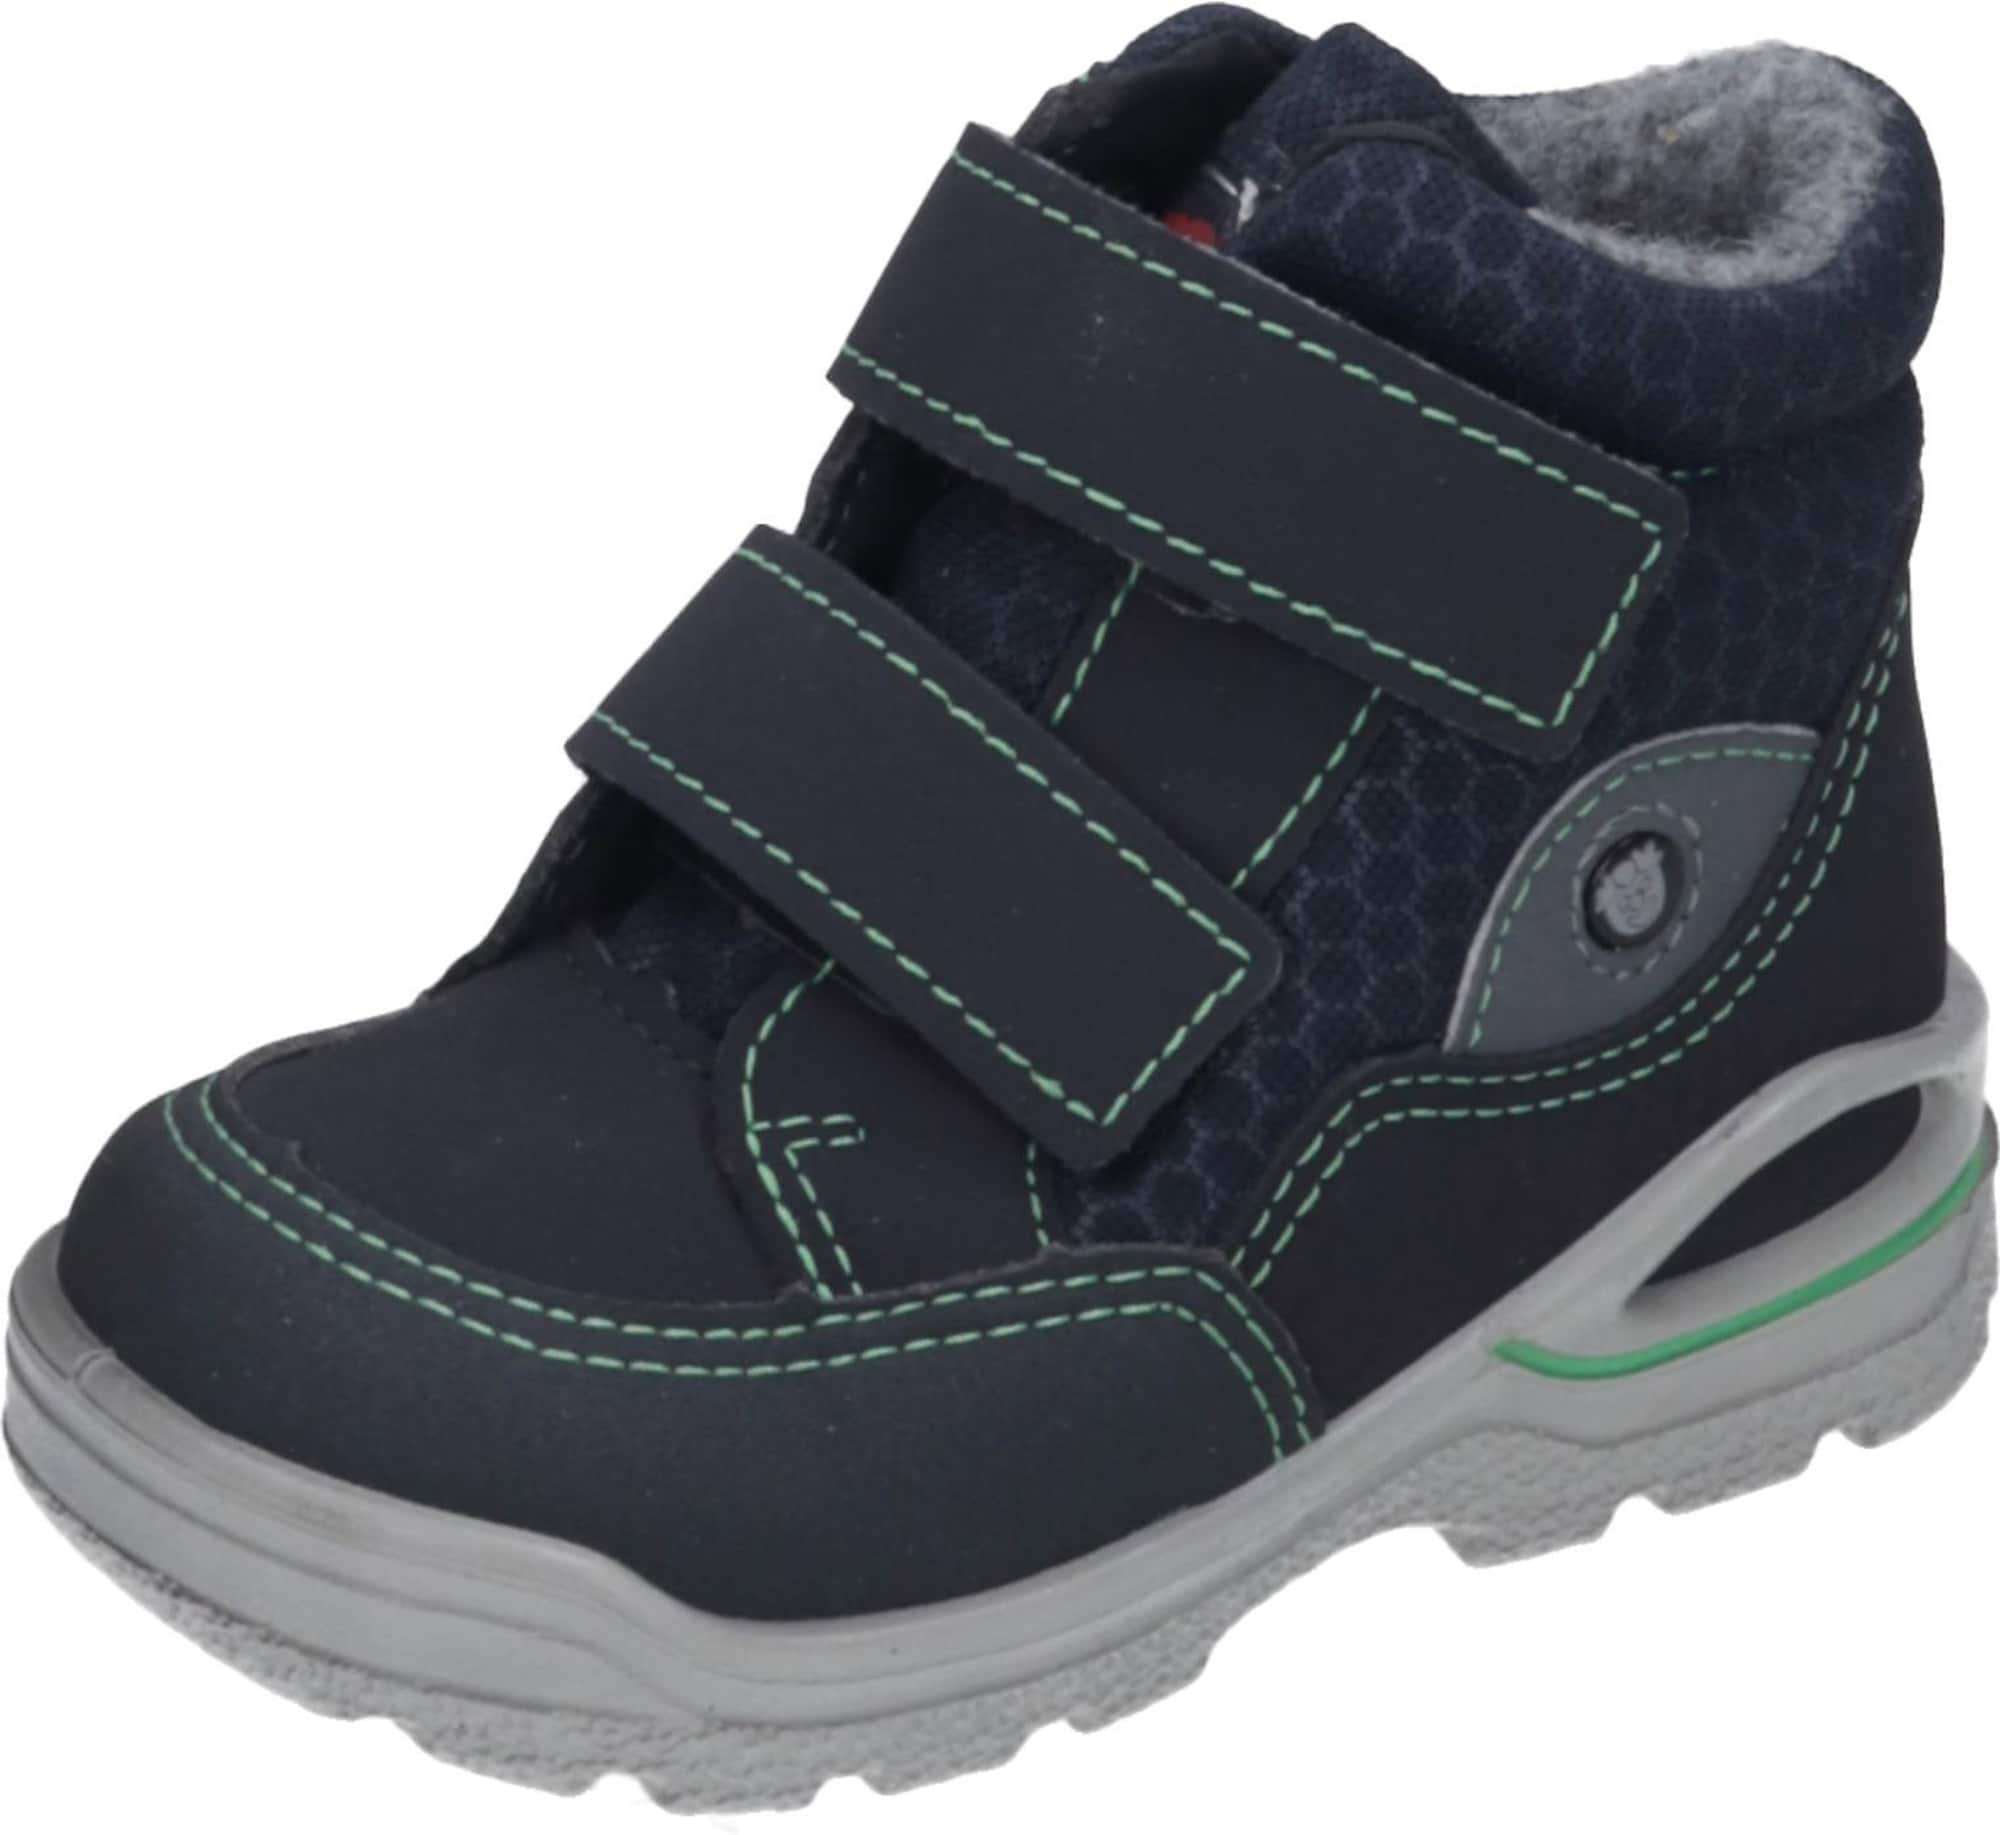 Miniboysschuhe - Stiefel - Onlineshop ABOUT YOU